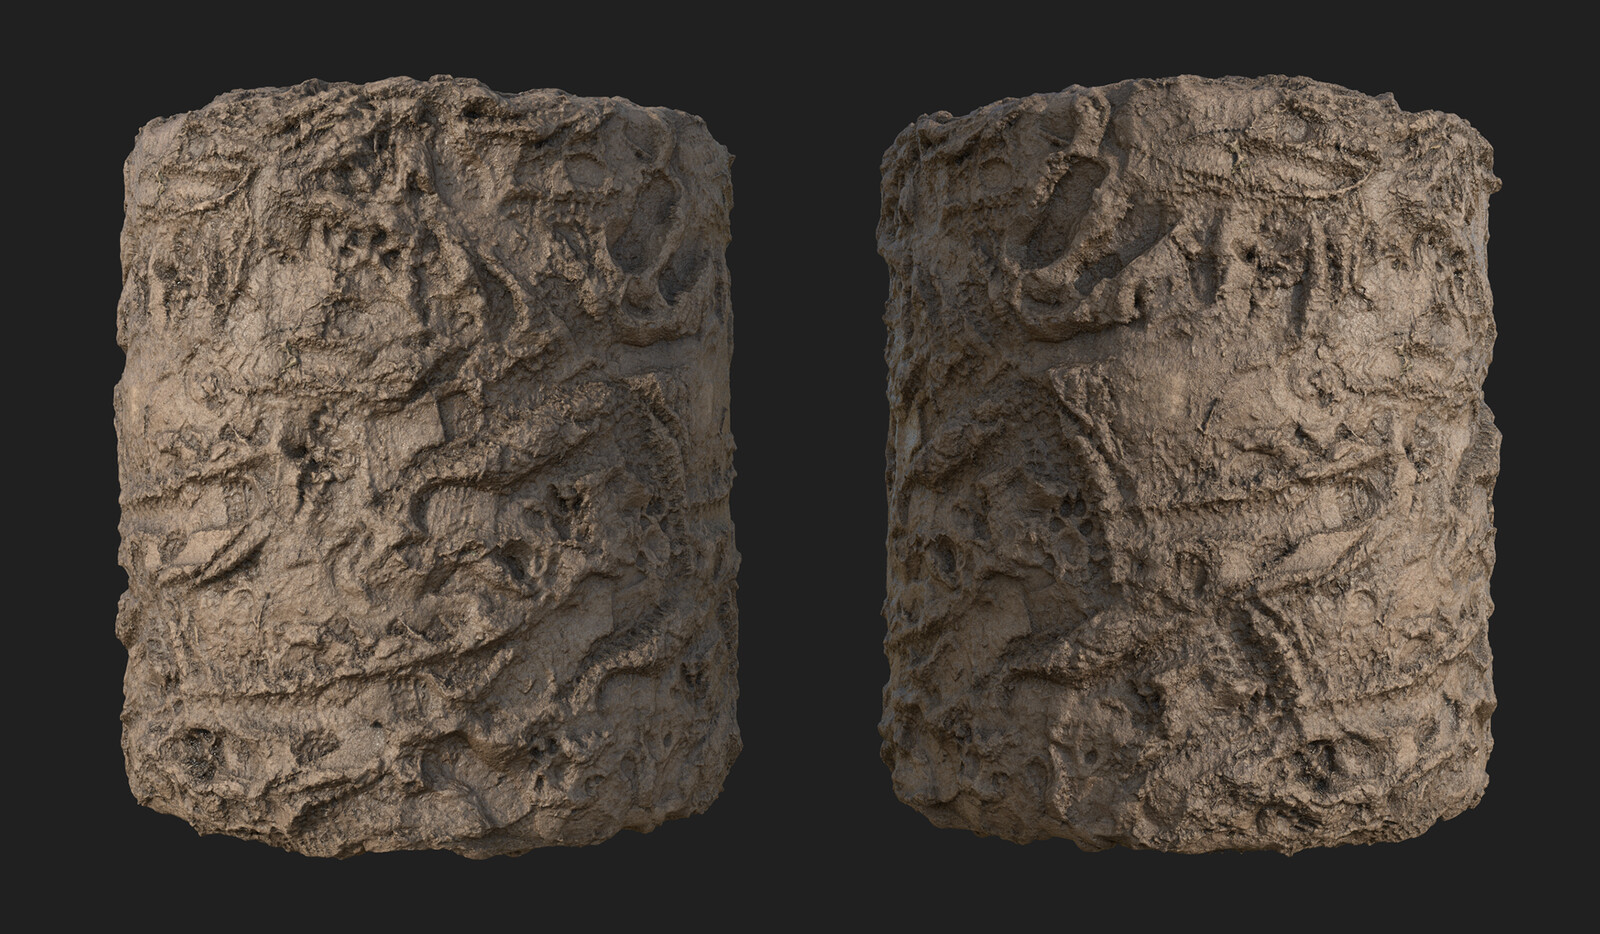 Muddy Ground 3D Scanned Material